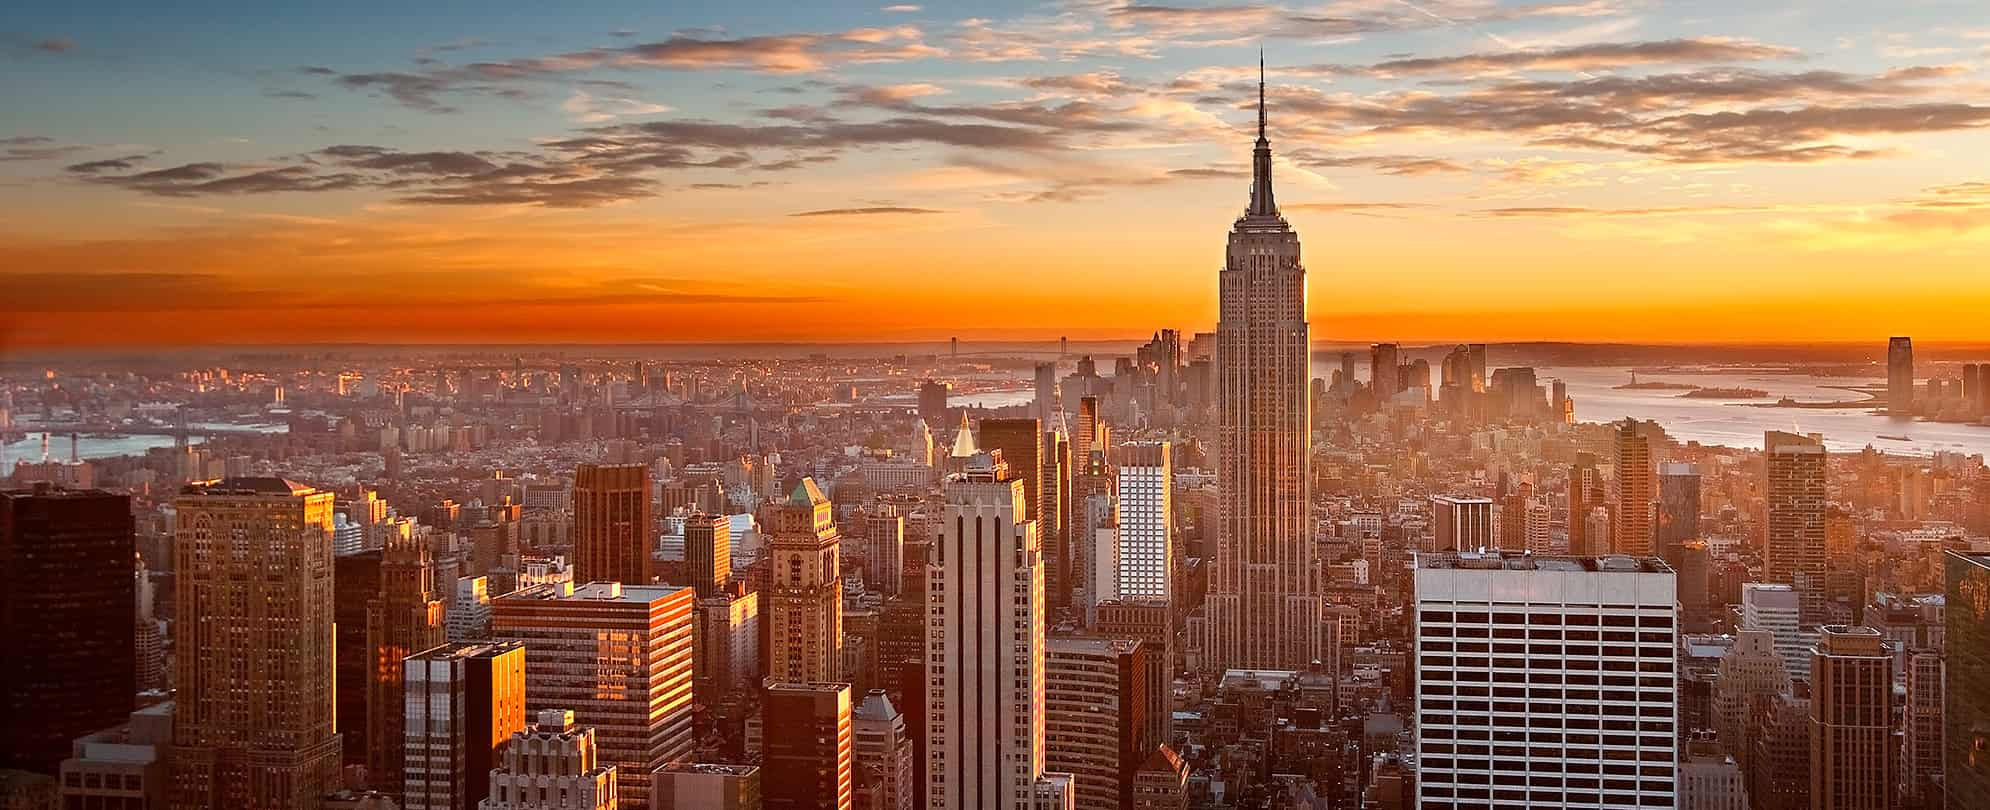 Birds eye sunset view of the Empire state Building in New York City, New York